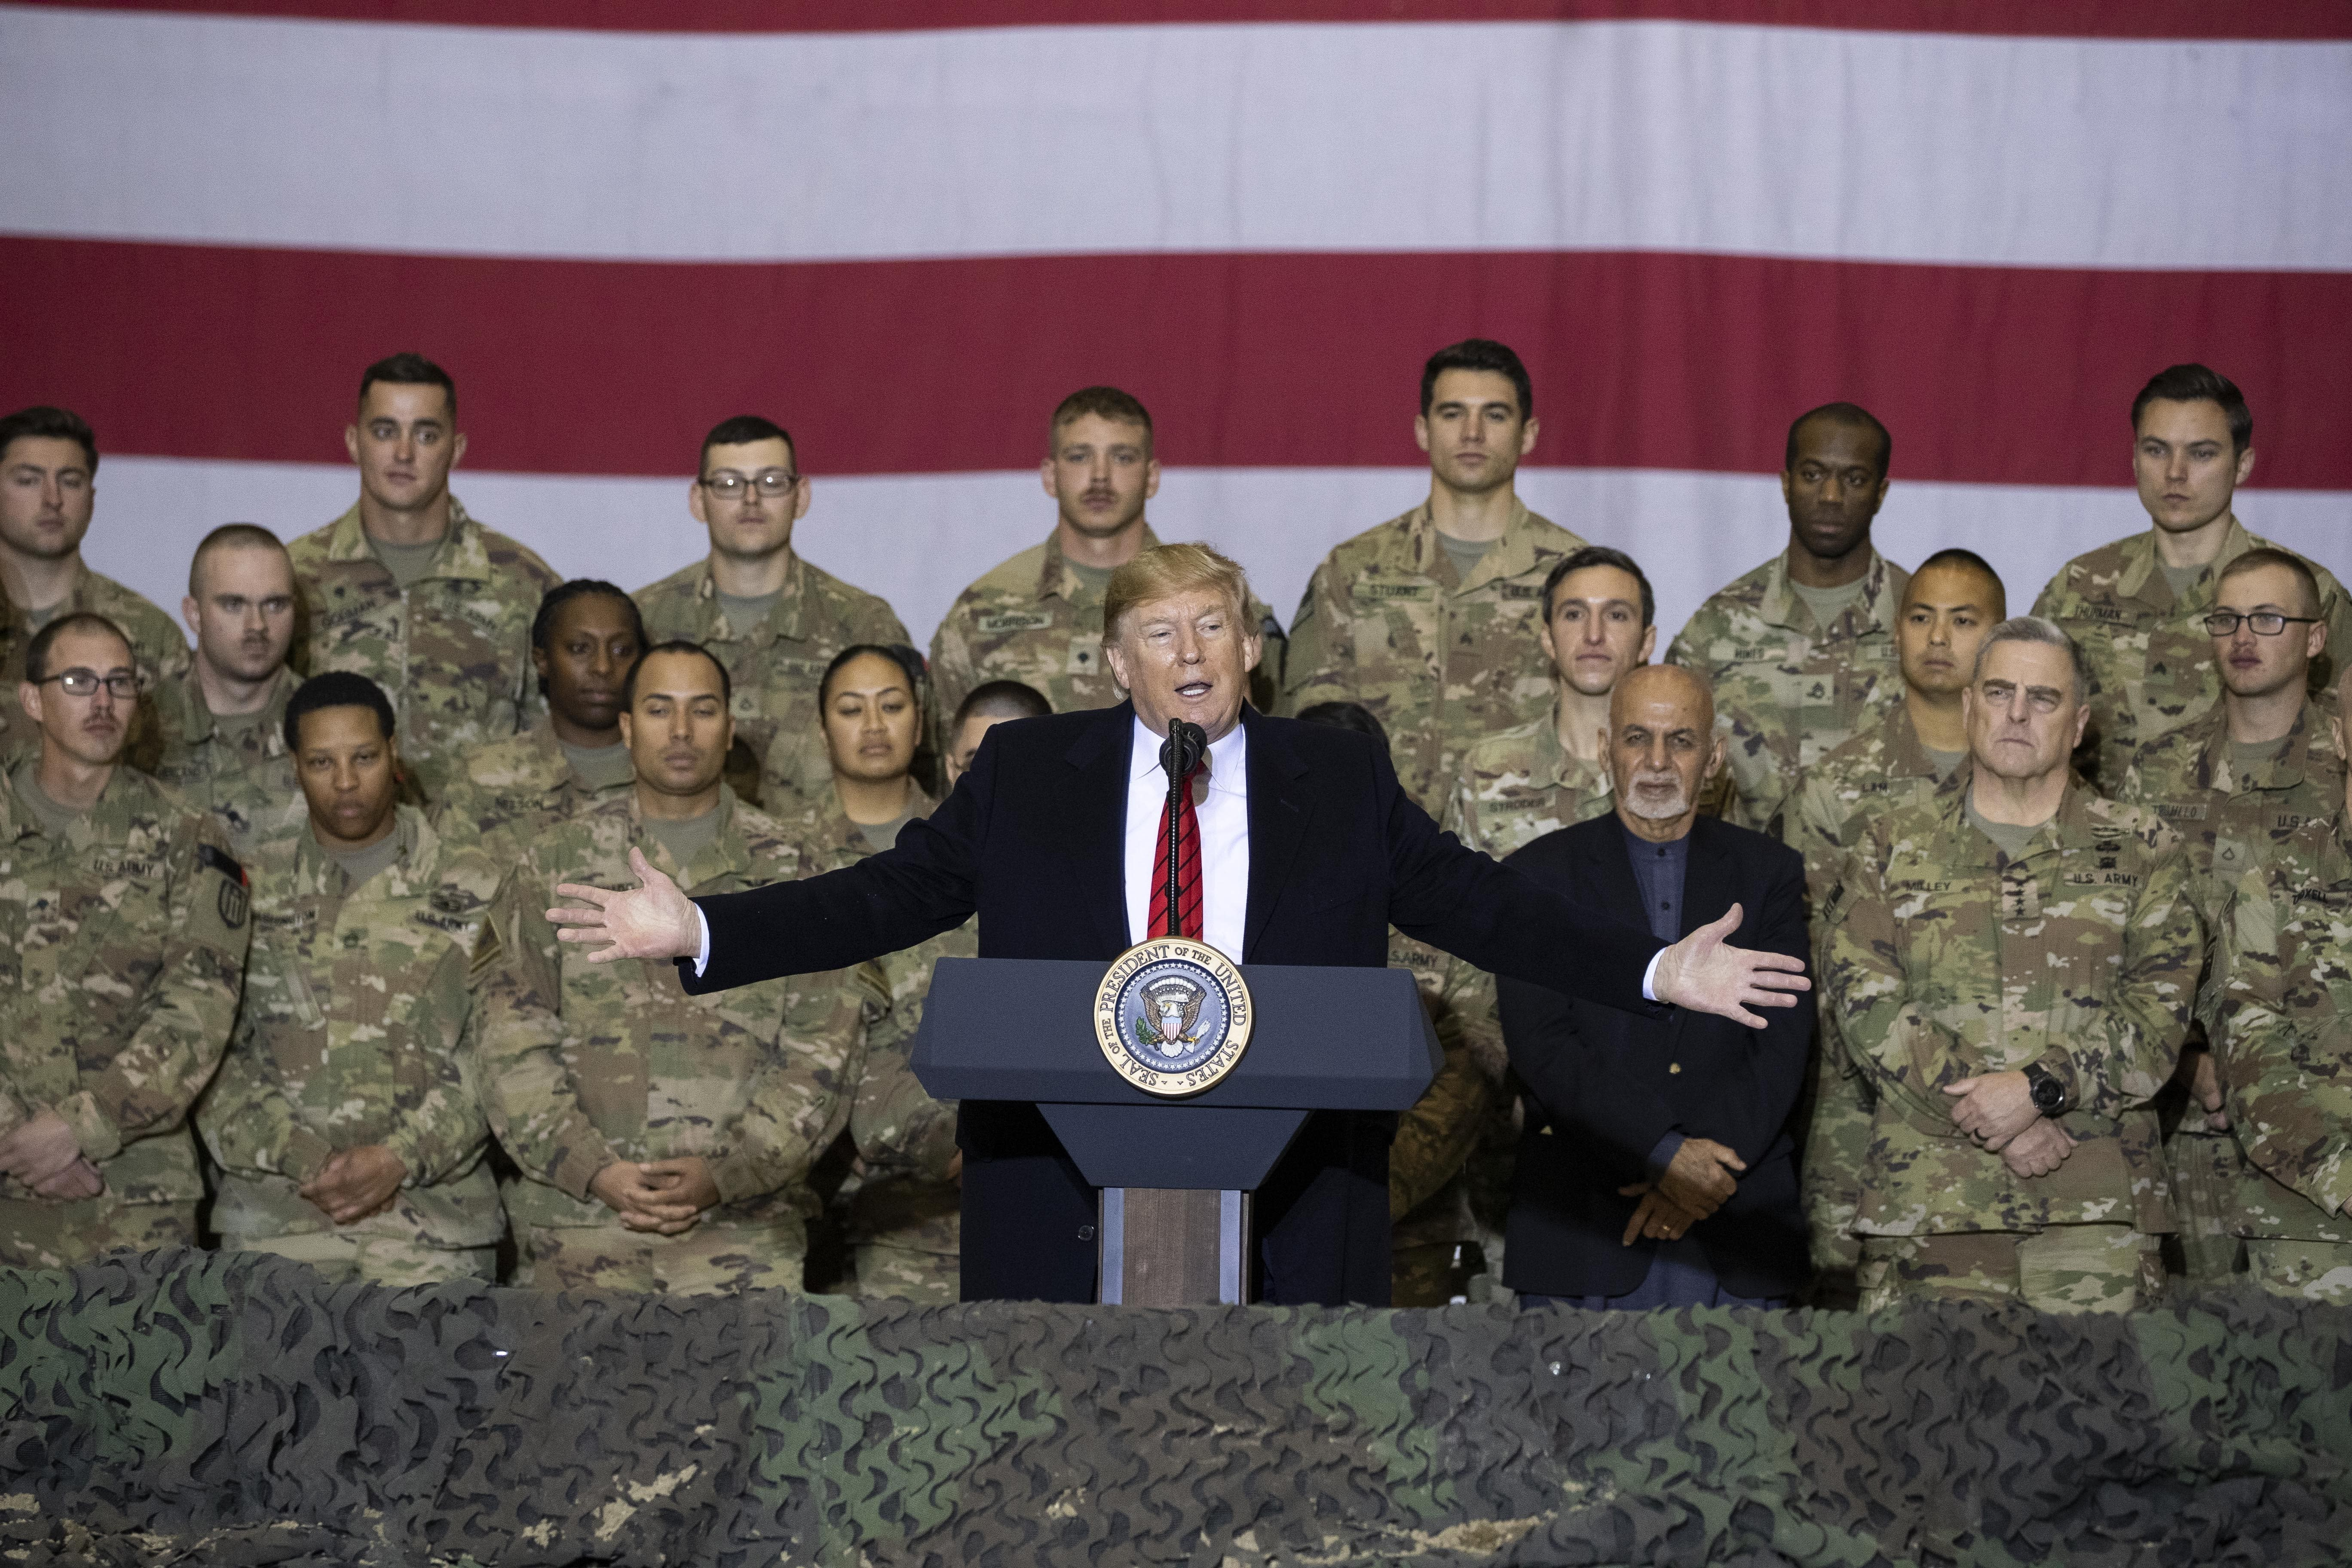 President Donald Trump, center, with Afghan President Ashraf Ghani and Joint Chiefs Chairman Gen. Mark Milley, behind him at right, addresses members of the military during a surprise Thanksgiving Day visit at Bagram Air Field, Afghanistan on Nov. 28, 2019. (Alex Brandon/AP)